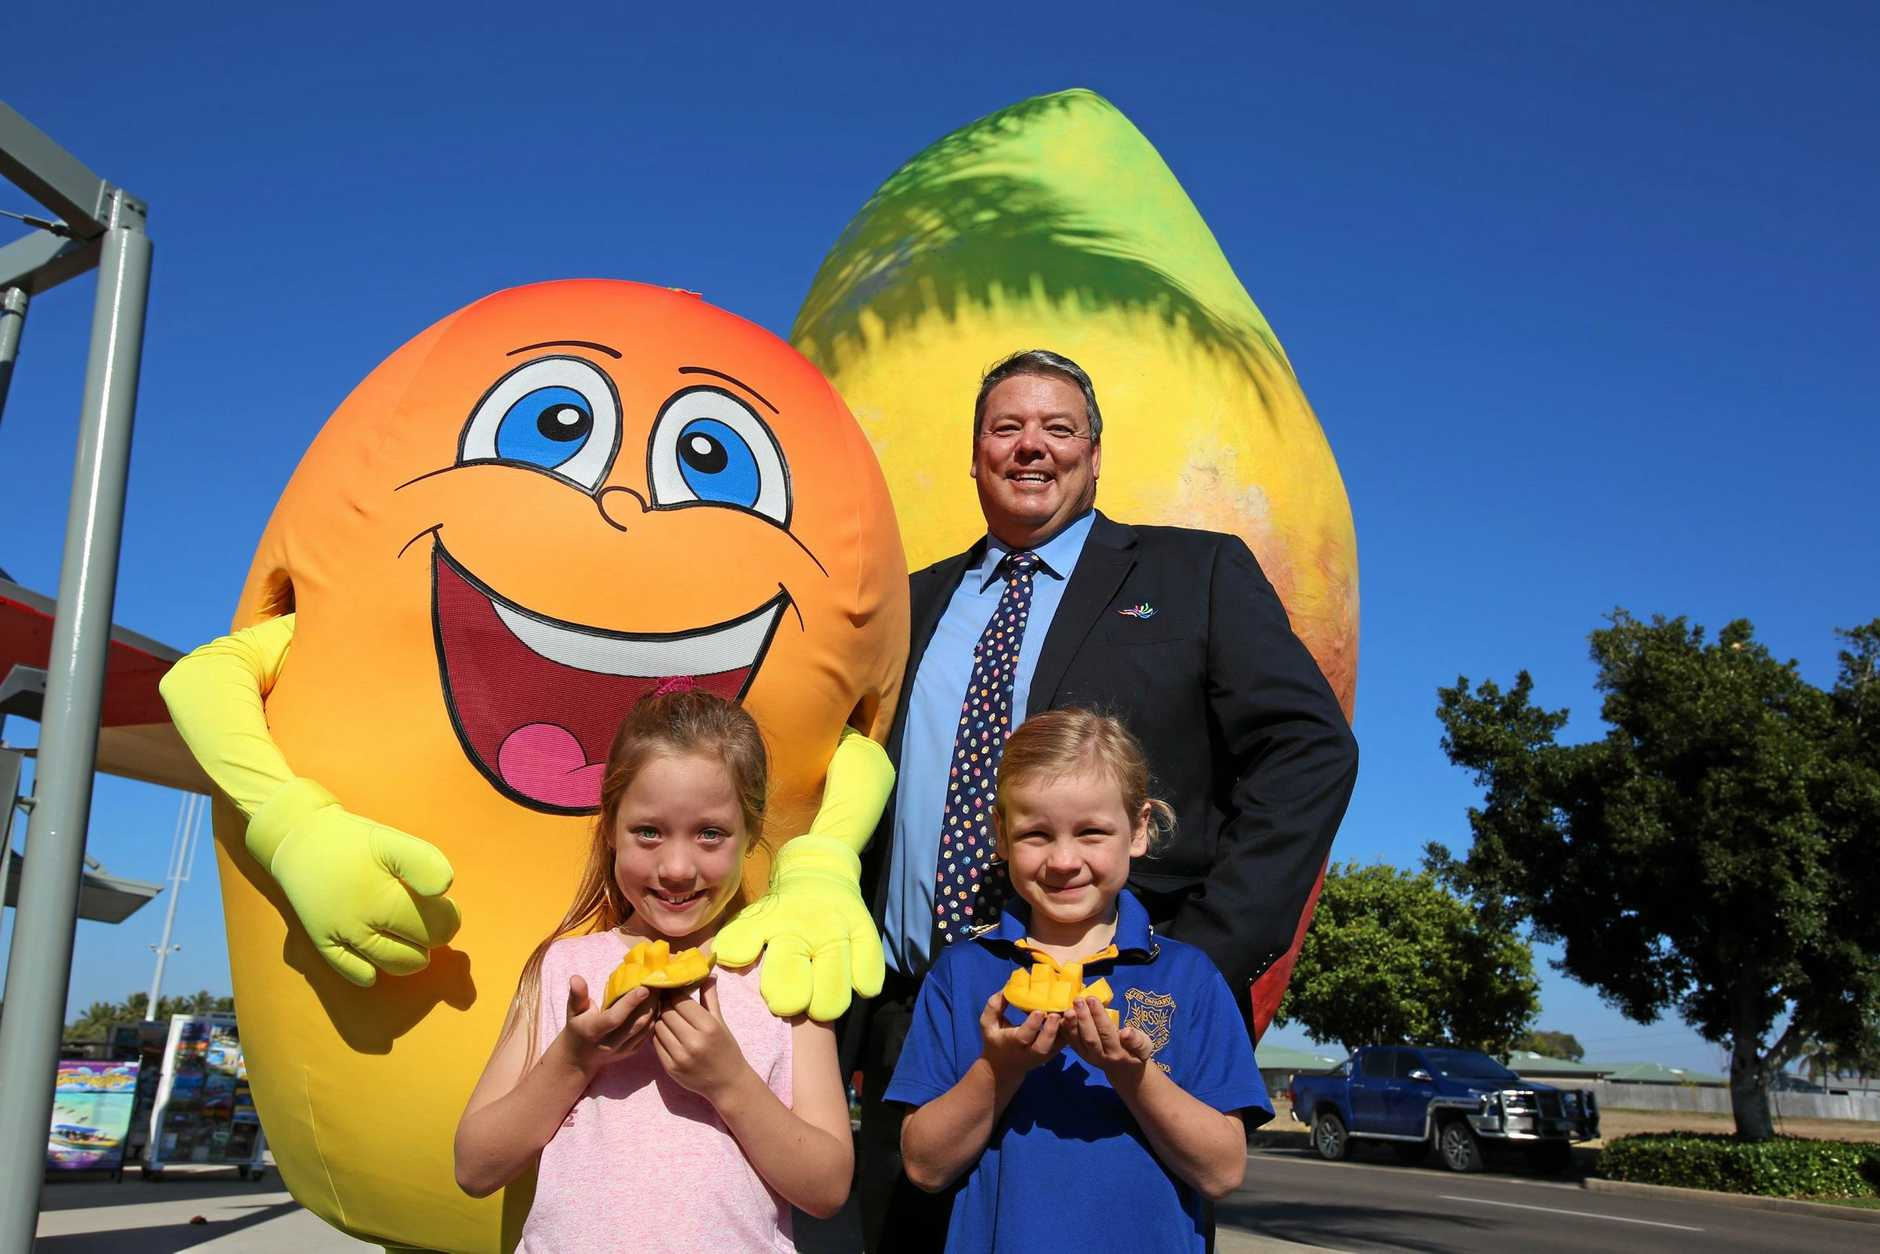 FESTIVAL FEVER: Kenny the Mango joined Whitsunday Regional Council Mayor Andrew Willcox and young Bowen locals Jordyn Barnes and Emma Short to kick start Bowen's campaign for a festival of mangoes.